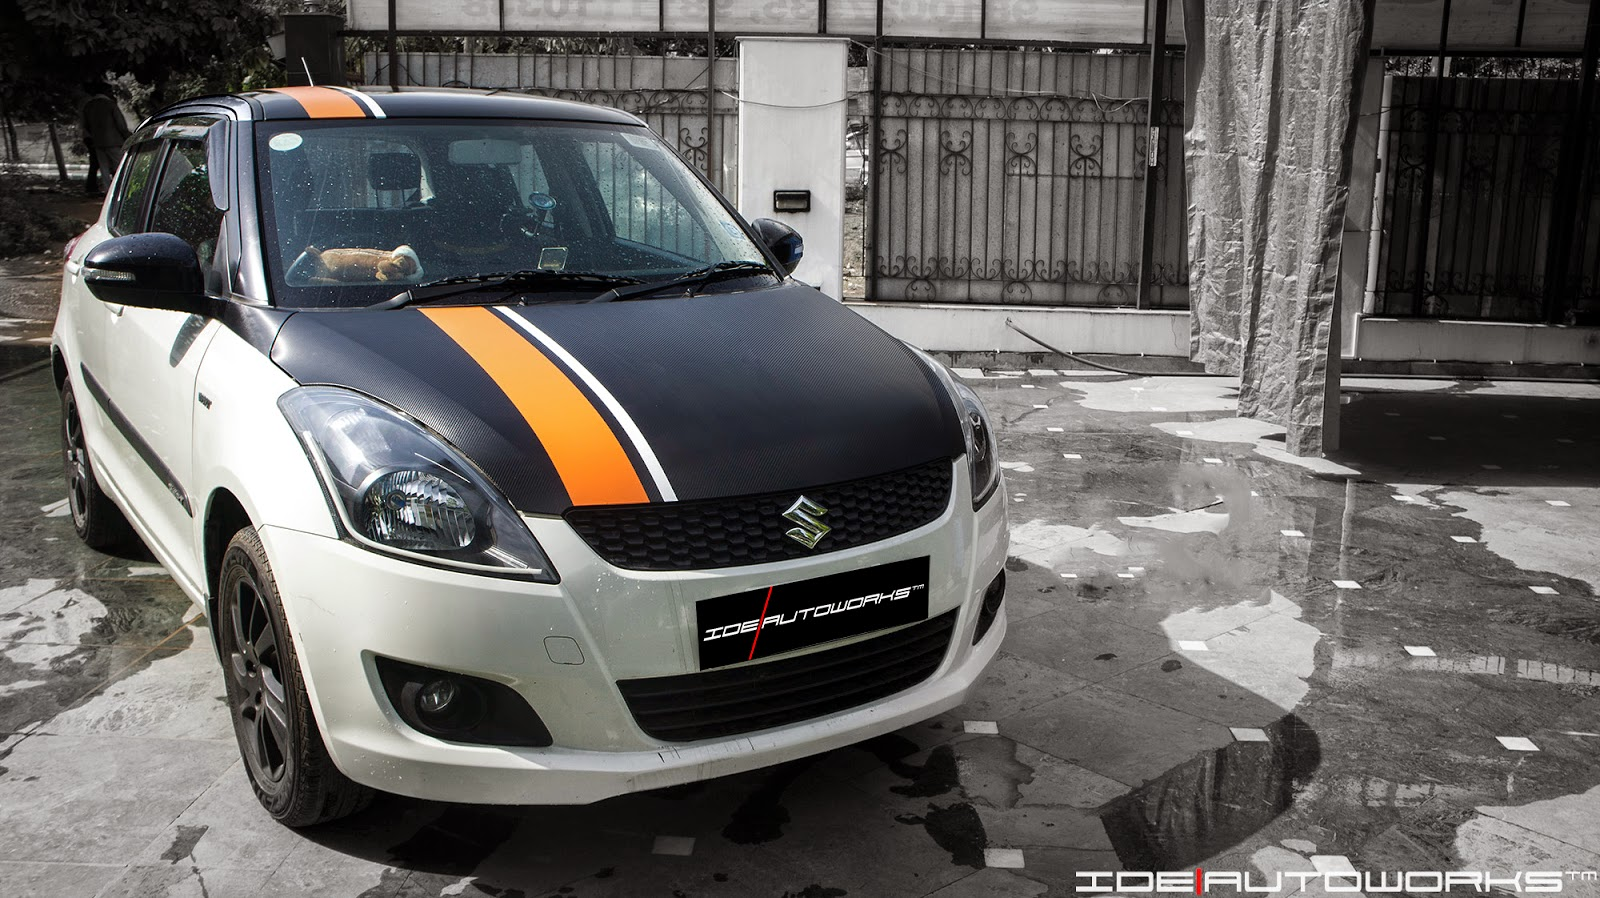 ide ideautowokrs fortuner carwrapping ide autoworks pinterest cars